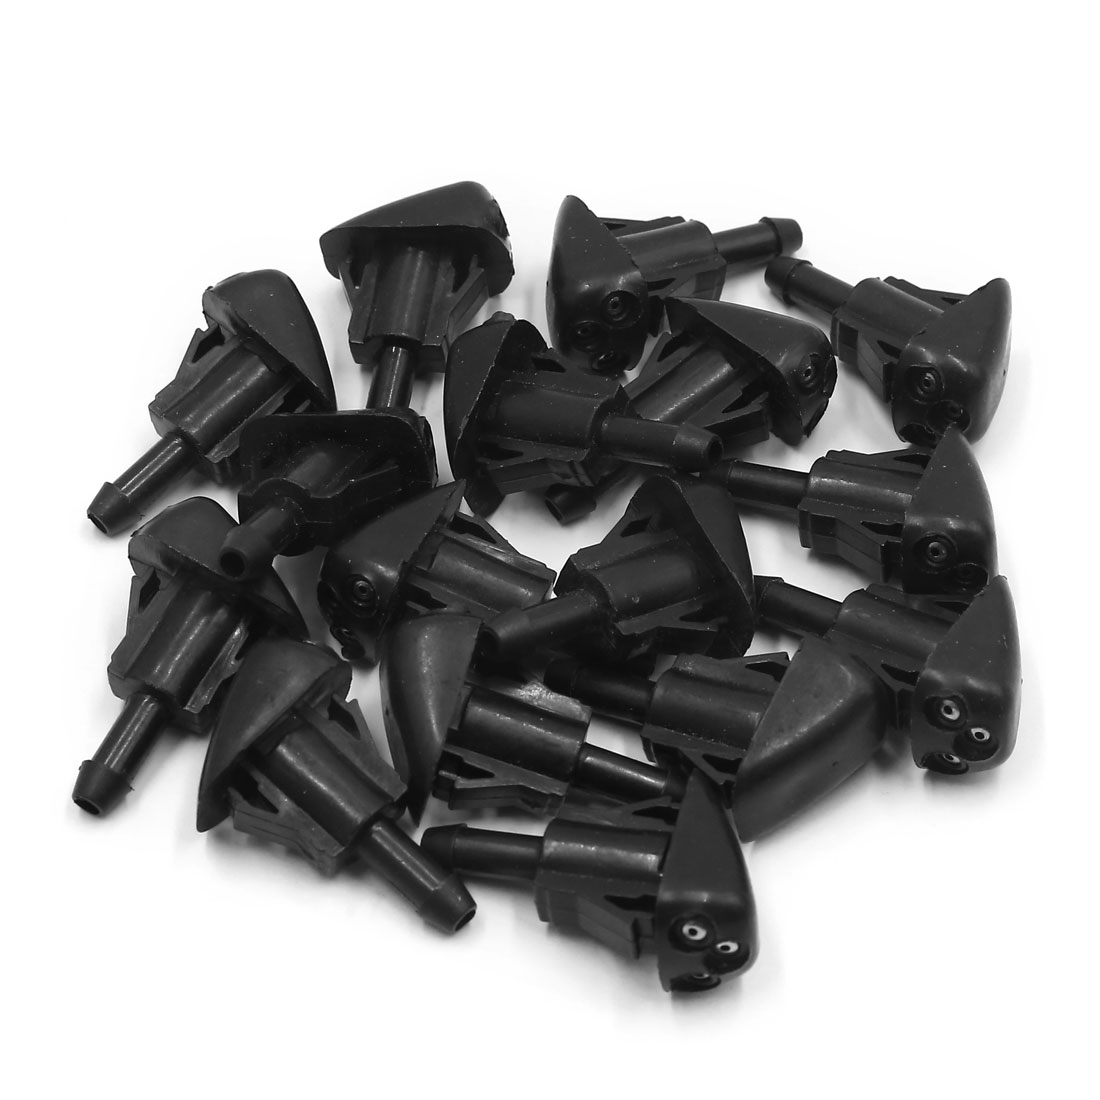 16 Pcs Plastic Windshield Washer Wiper Water Sprayer Nozzle for